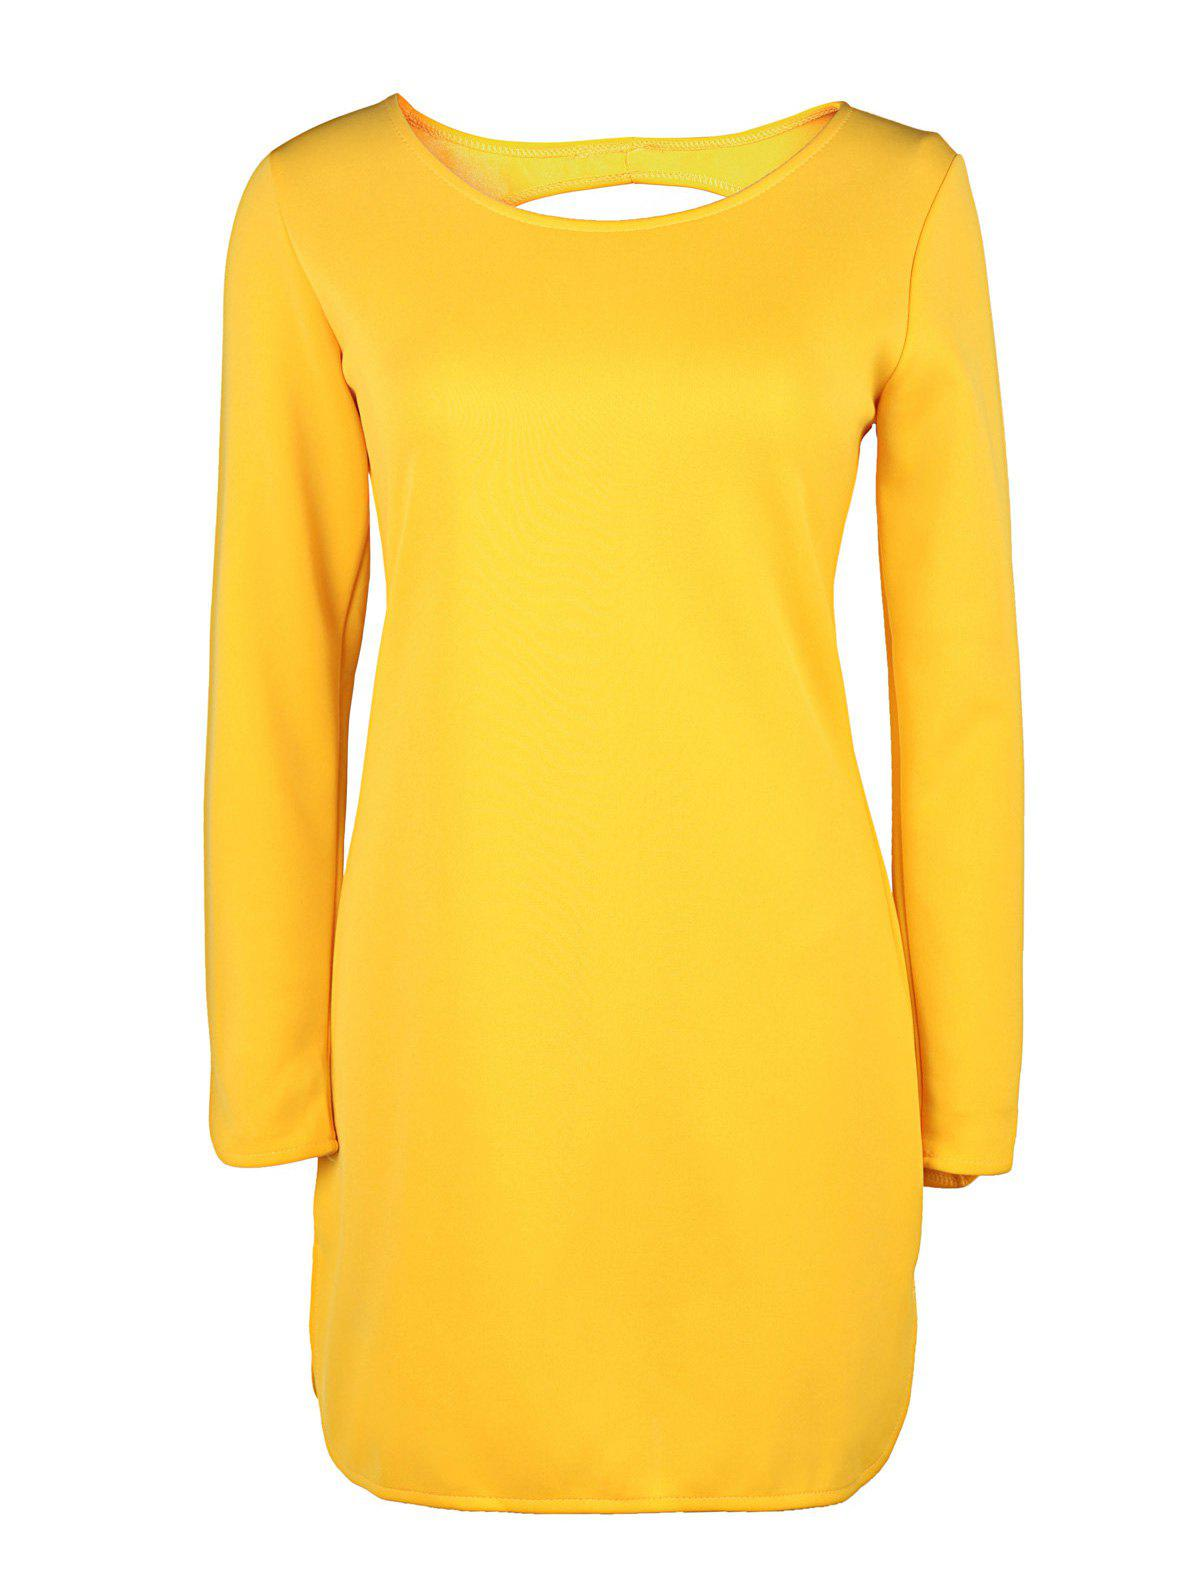 Brief Style Long Sleeve Round Collar Hollow Out Women's Yellow Dress - YELLOW M